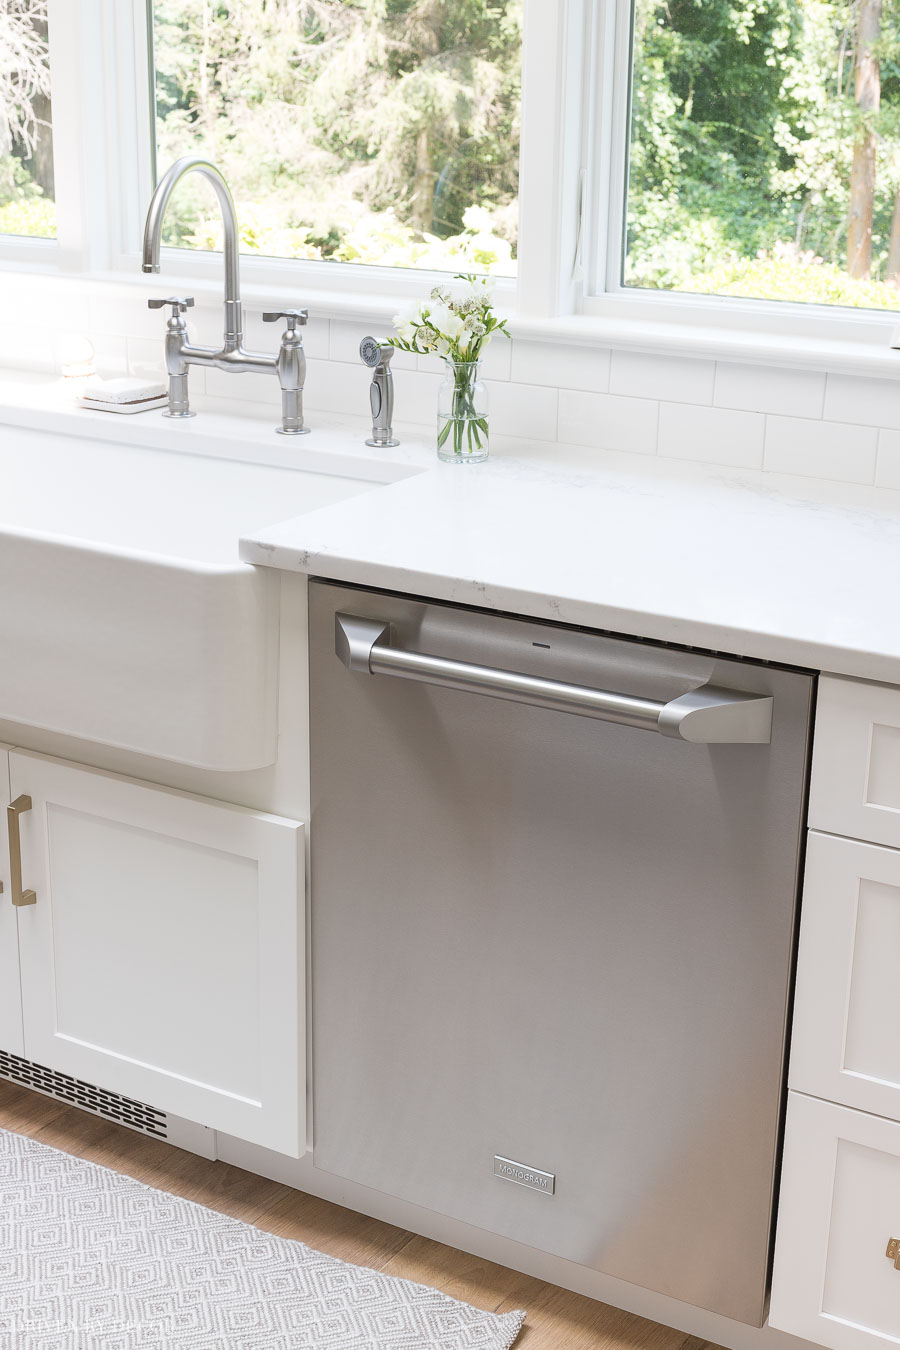 This Monogram dishwasher sits flush to the cabinets for a more built-in feel than most - love!